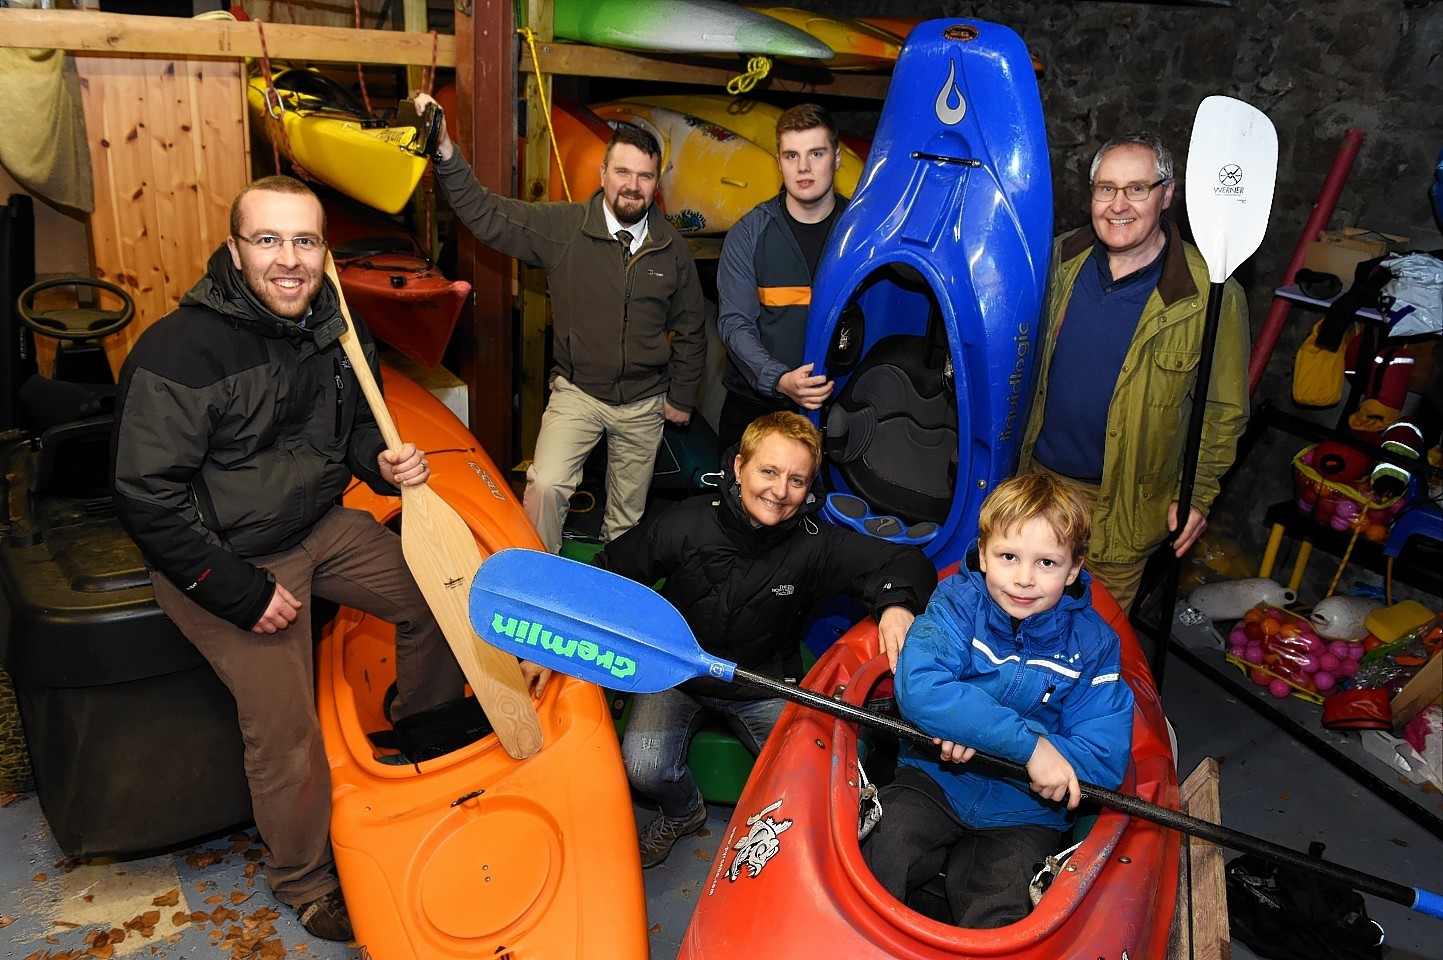 Club members Chris Redmond, architect Duncan Robson, Dale Kitching, Thomas and Mark Mitchell and Ben Redmond